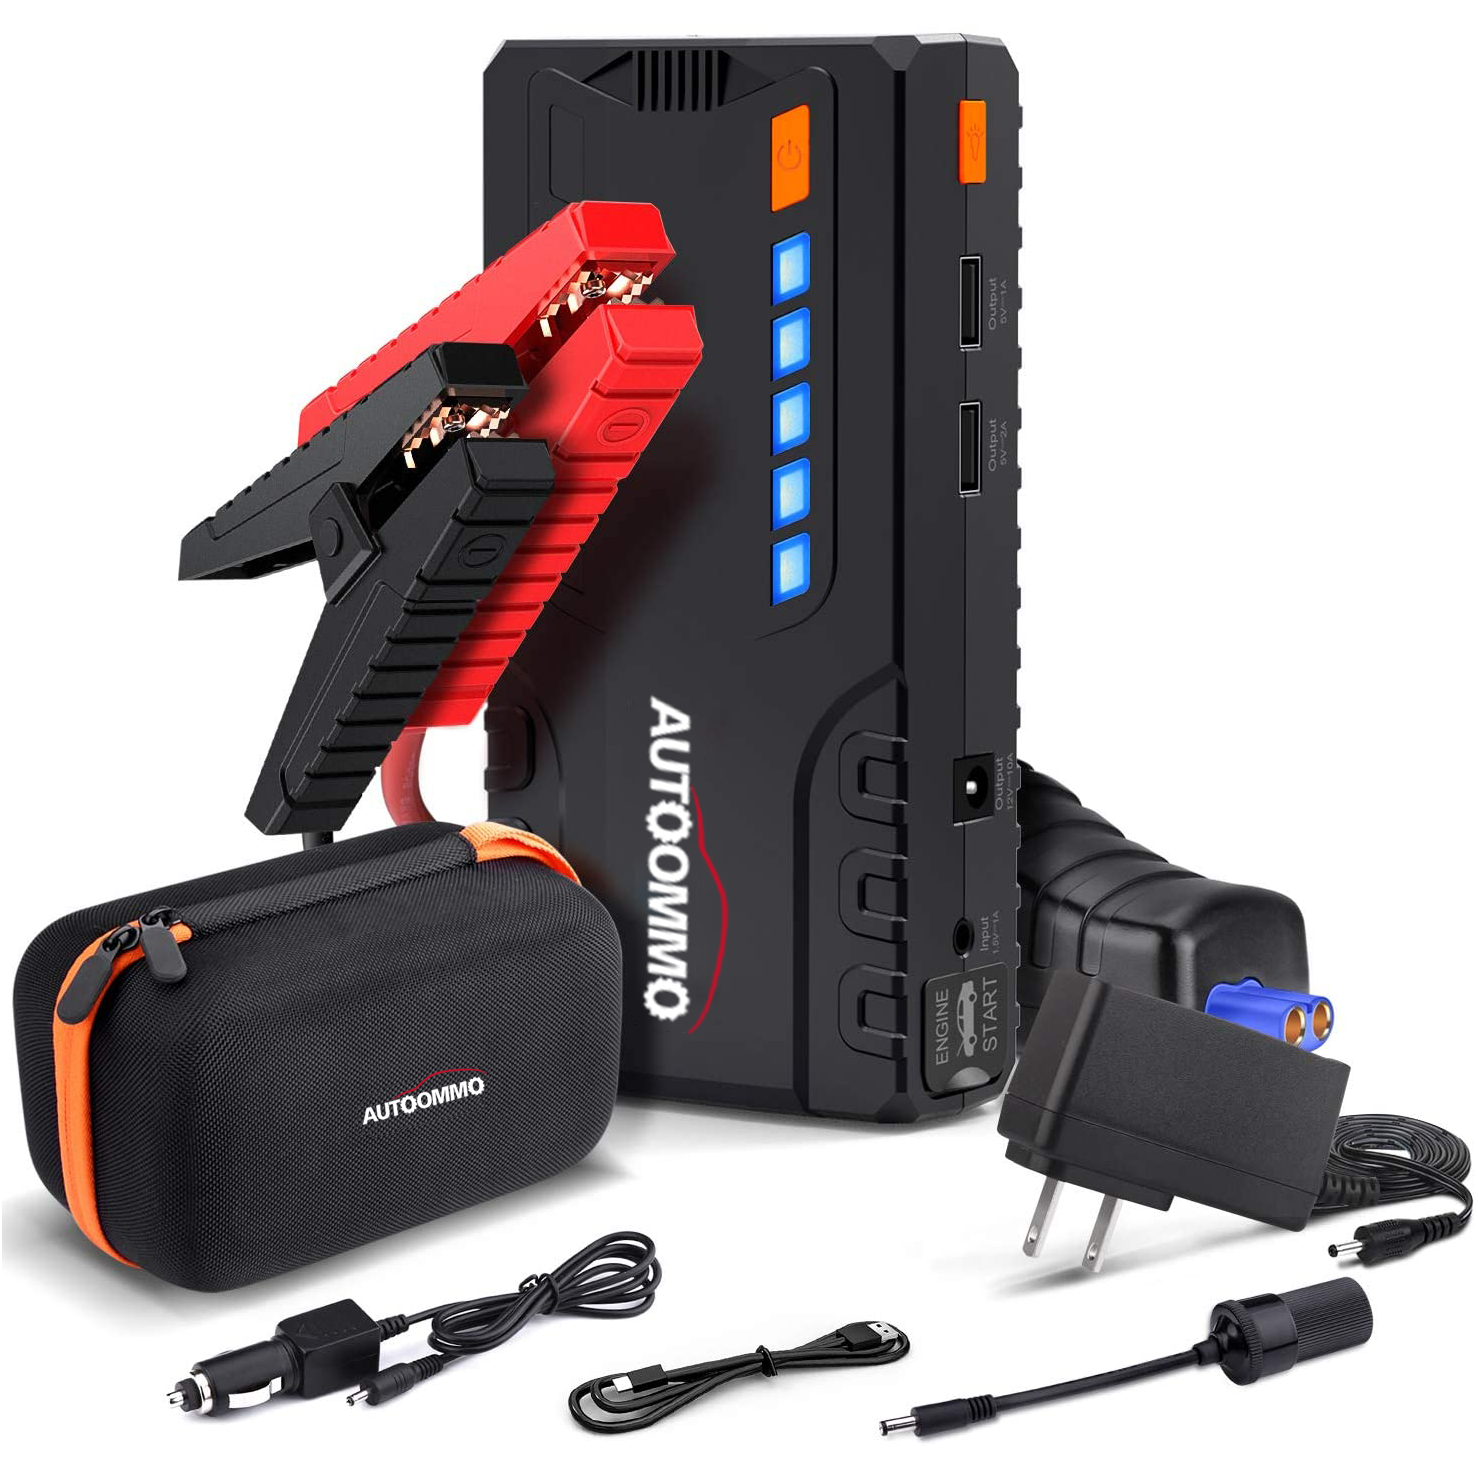 T6 800A Peak 18000mAh Car Jump Starter (up to 7.0L Gas, 5.5L Diesel Engine) with Long Standby, Quick